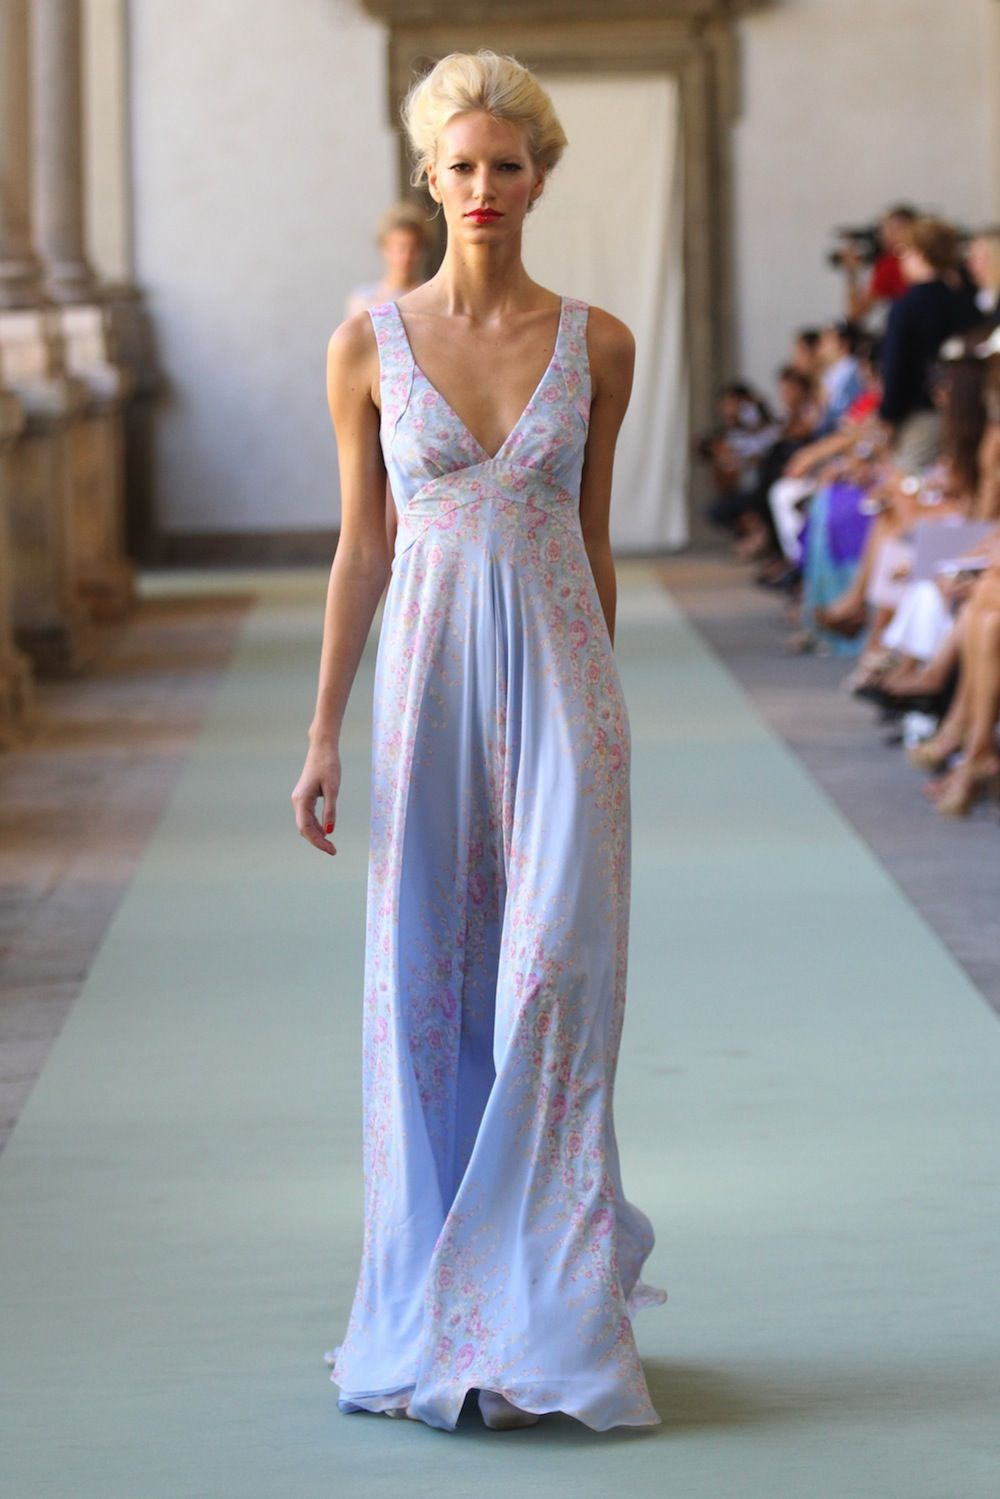 Luisa Beccaria, Italian vacation outfitter. | Vacation, Gowns and ...